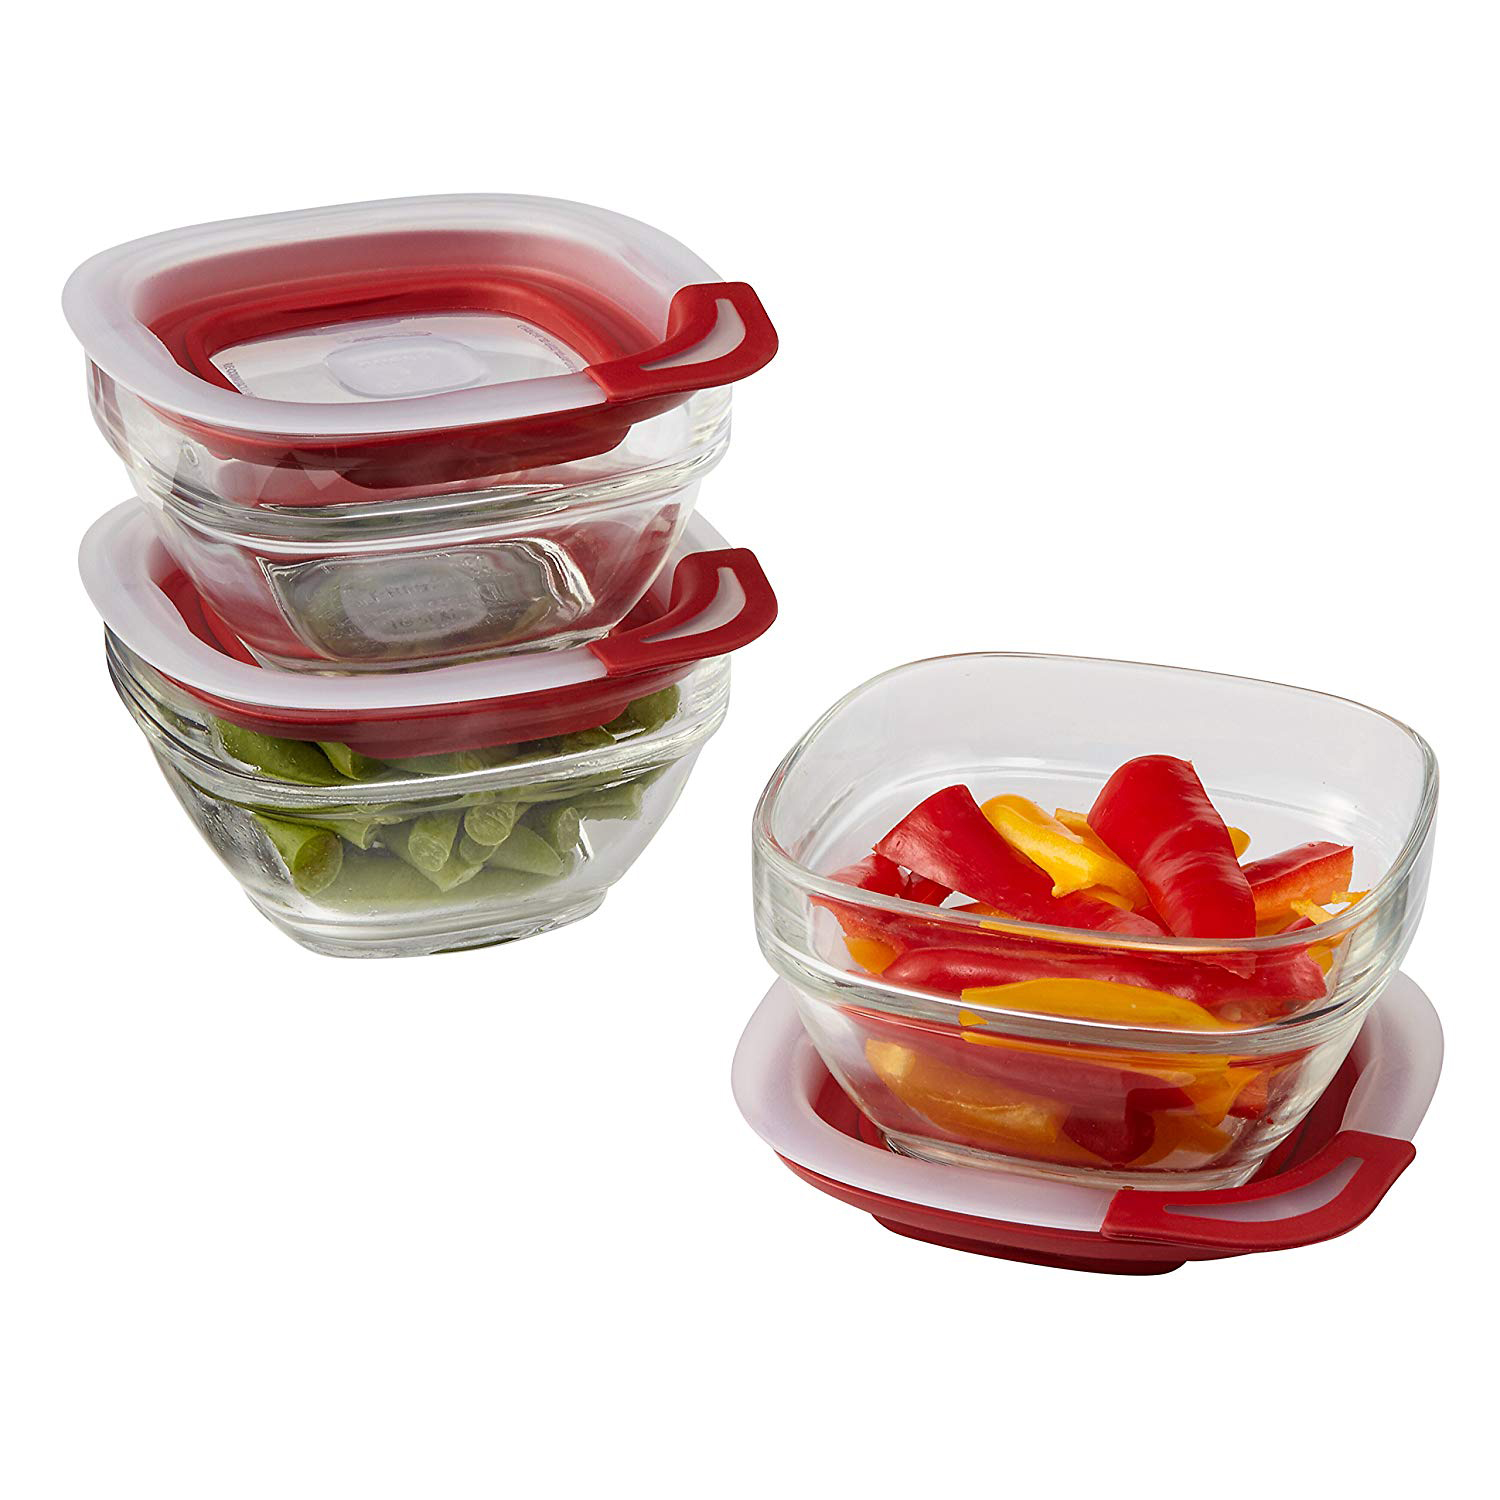 3 glass containers with rubber lids and fresh food inside